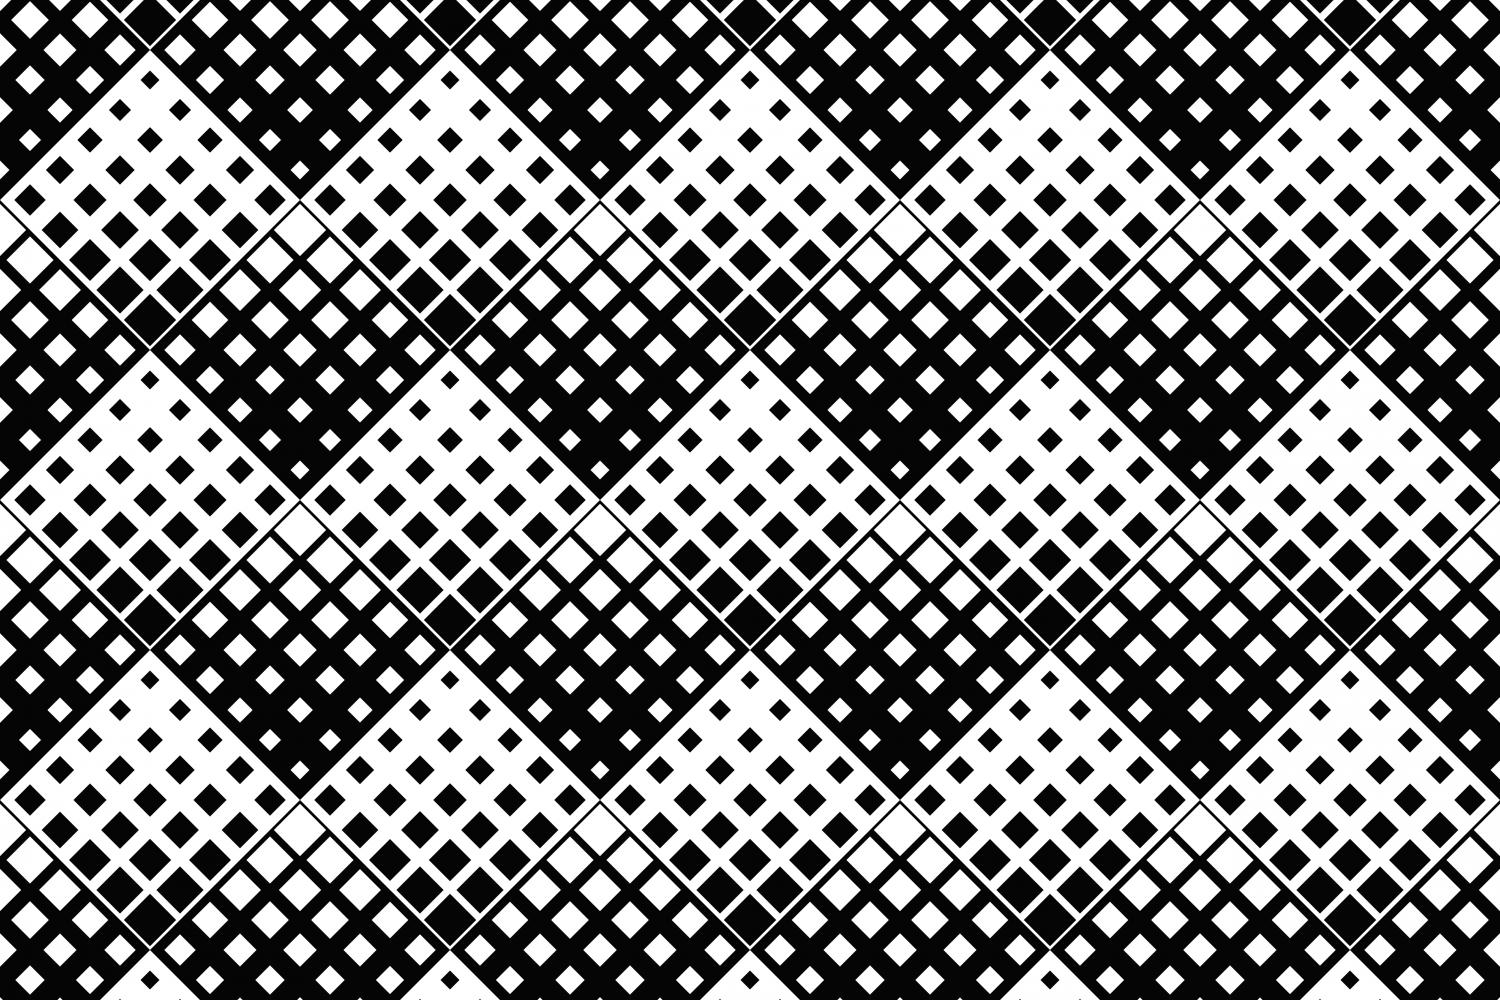 24 Seamless Square Patterns example image 19